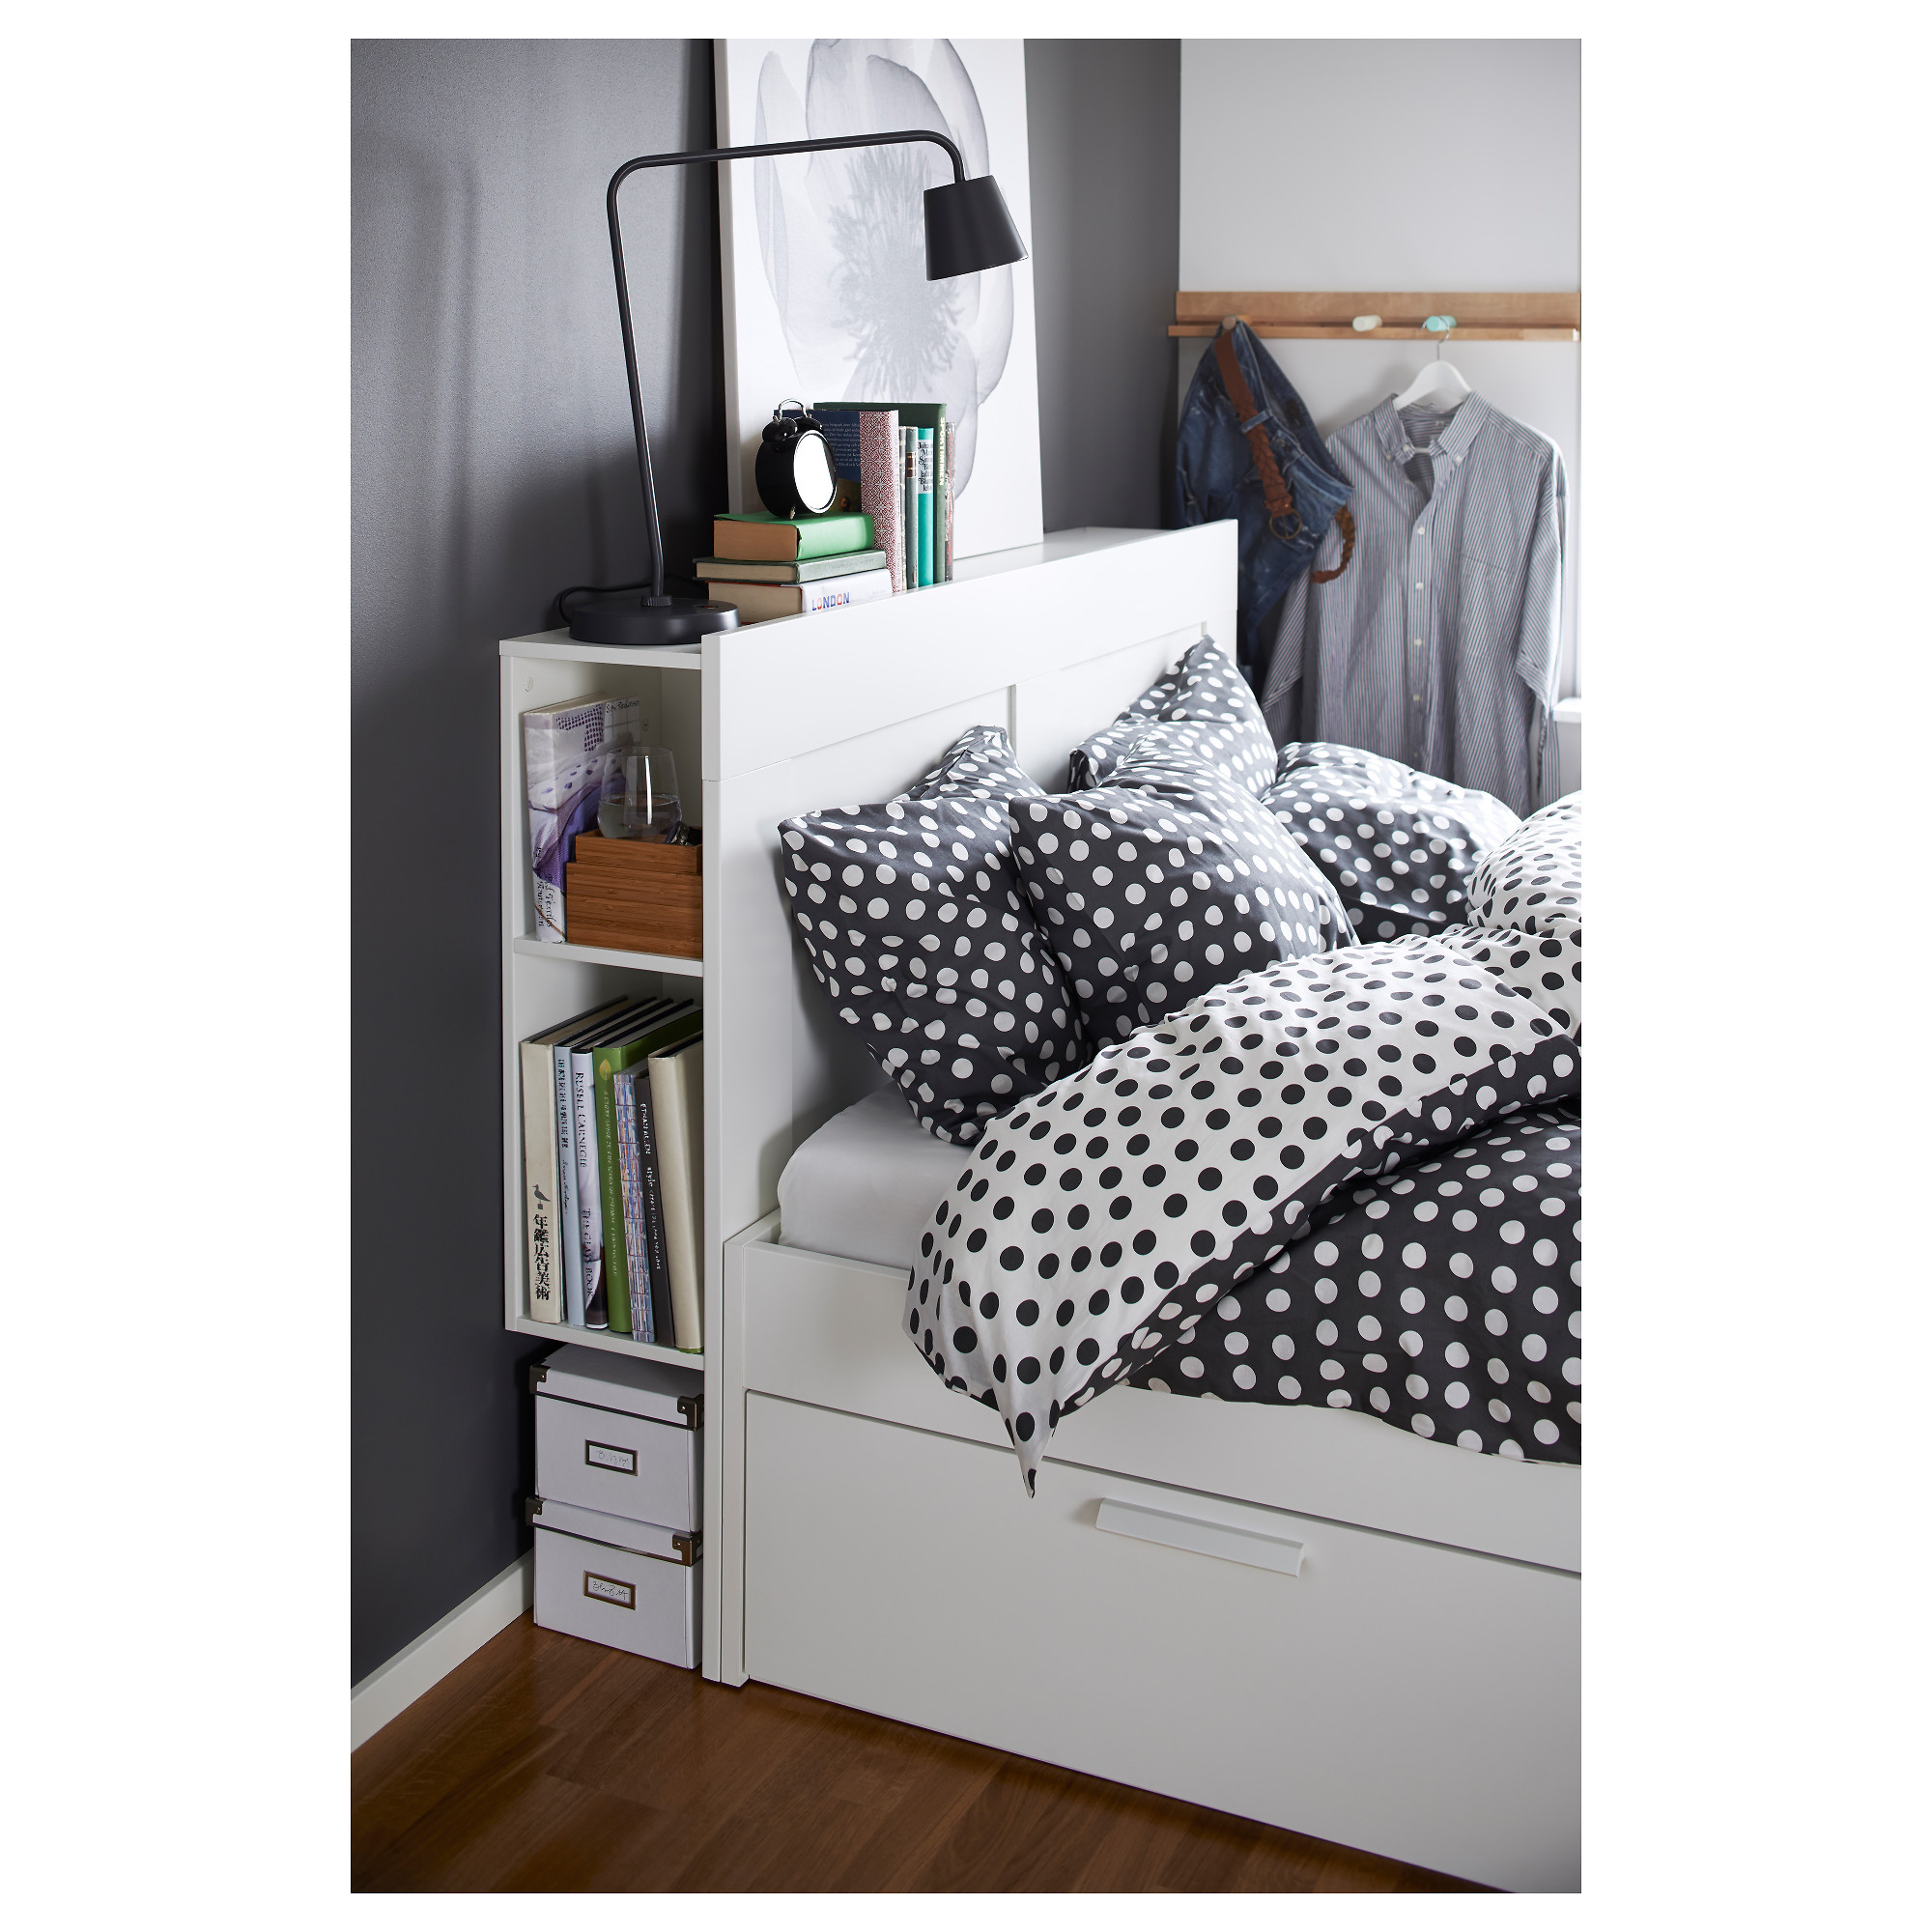 Bed Frames With Storage brimnes bed frame with storage & headboard - queen, lönset - ikea